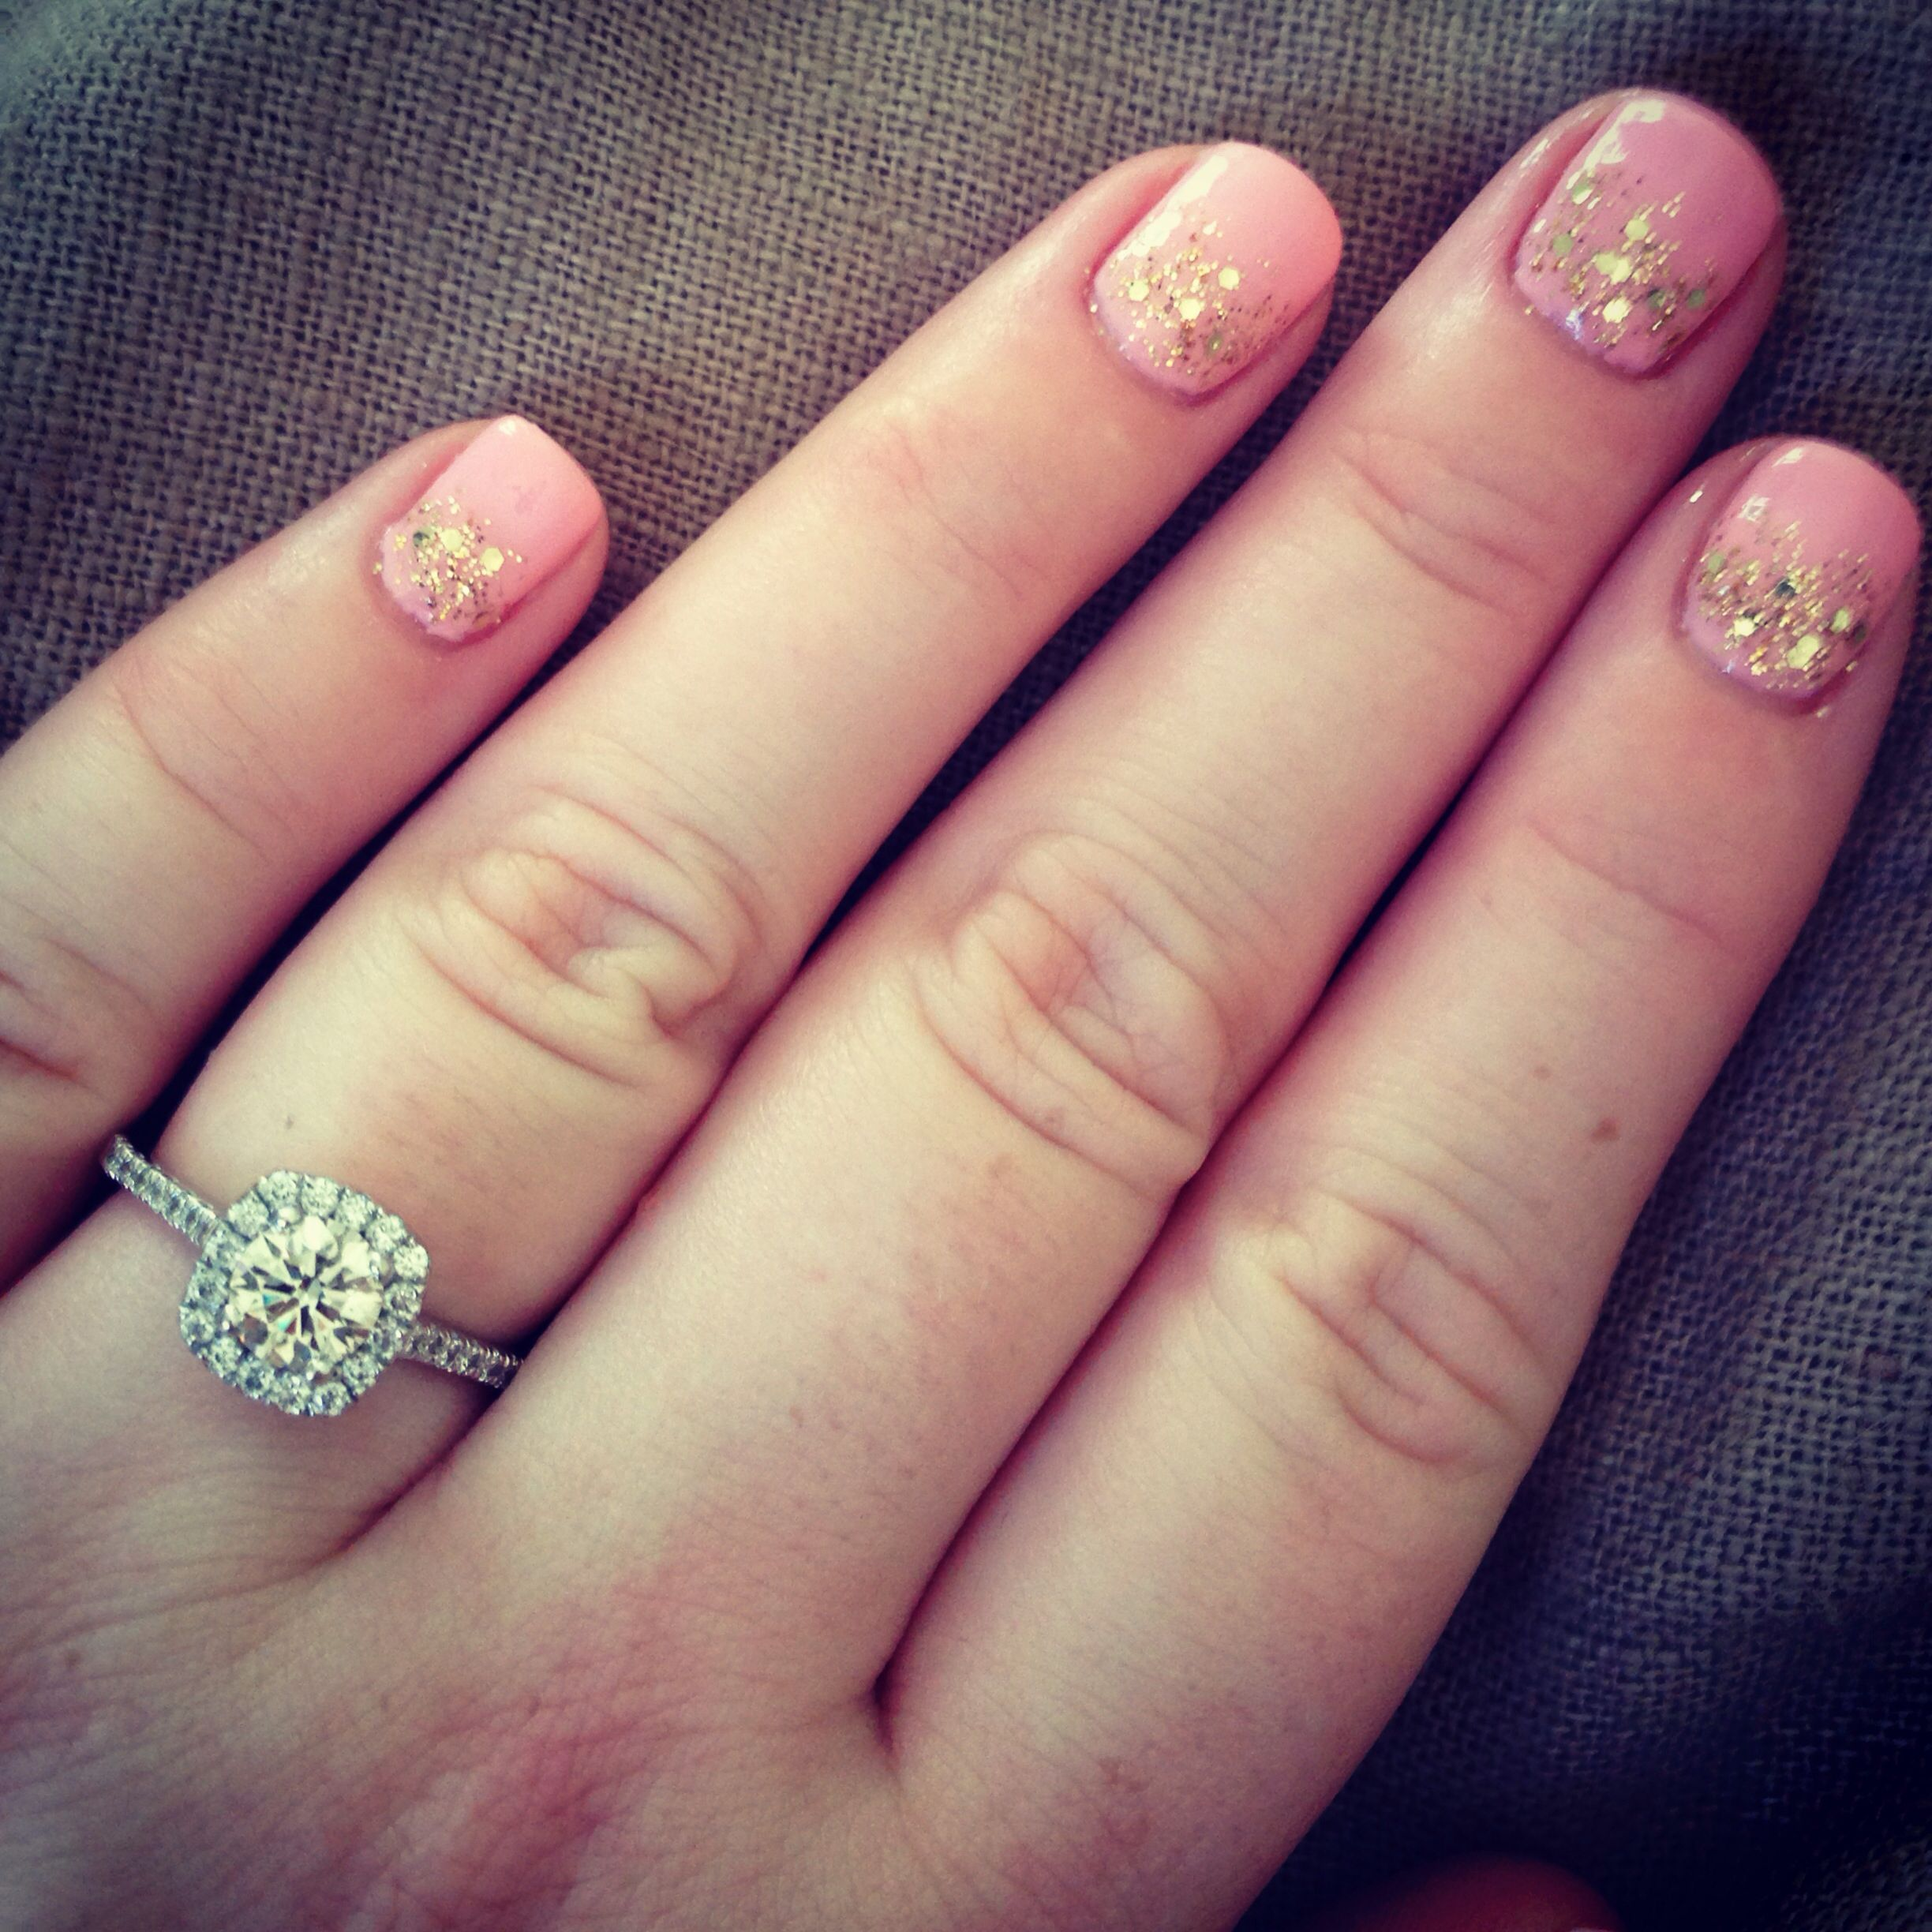 My Wedding Nails And Engagement Ring